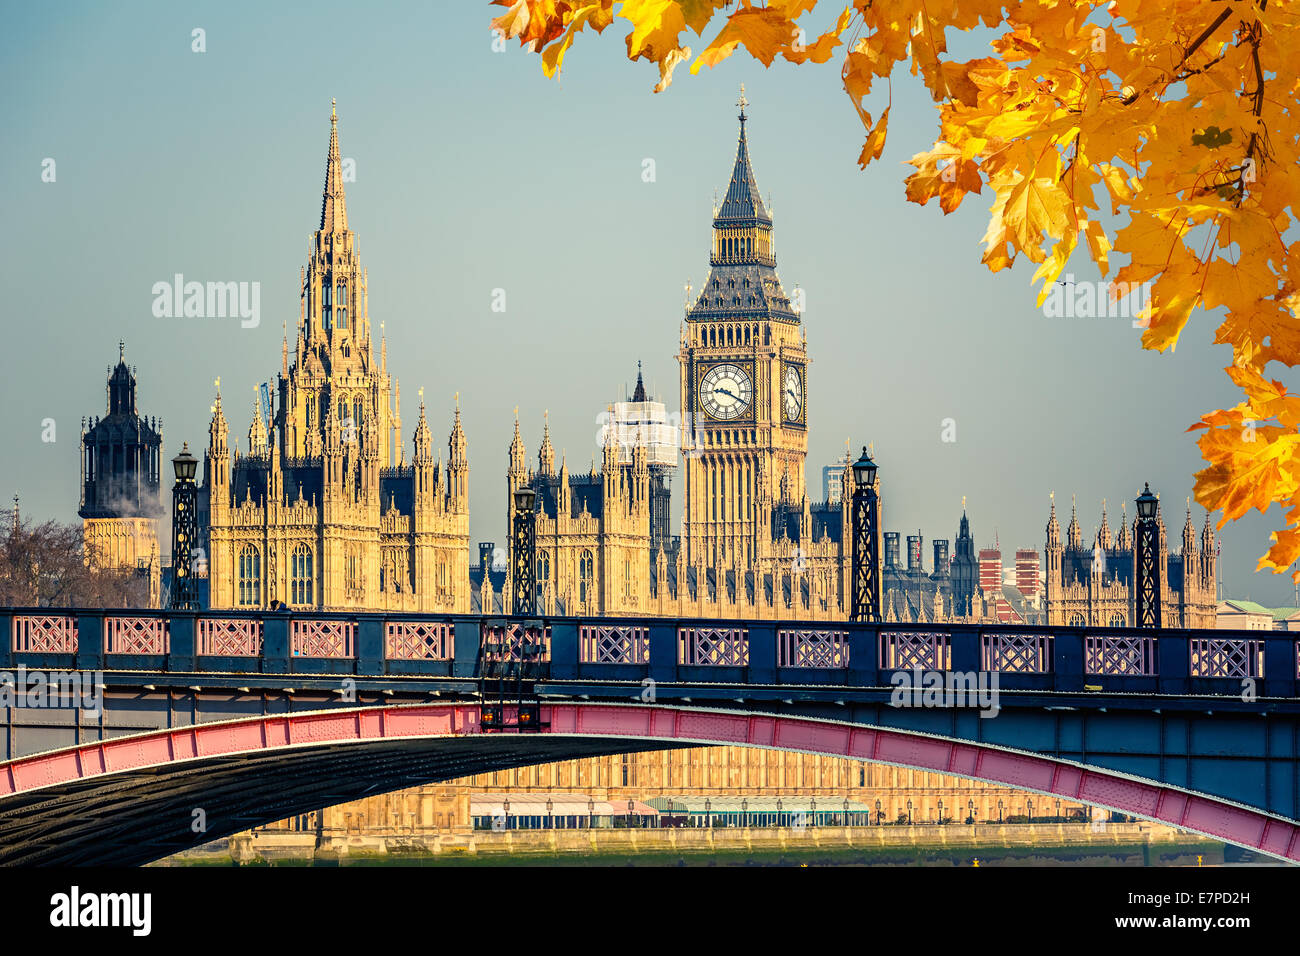 Big Ben and Houses of Parliament - Stock Image